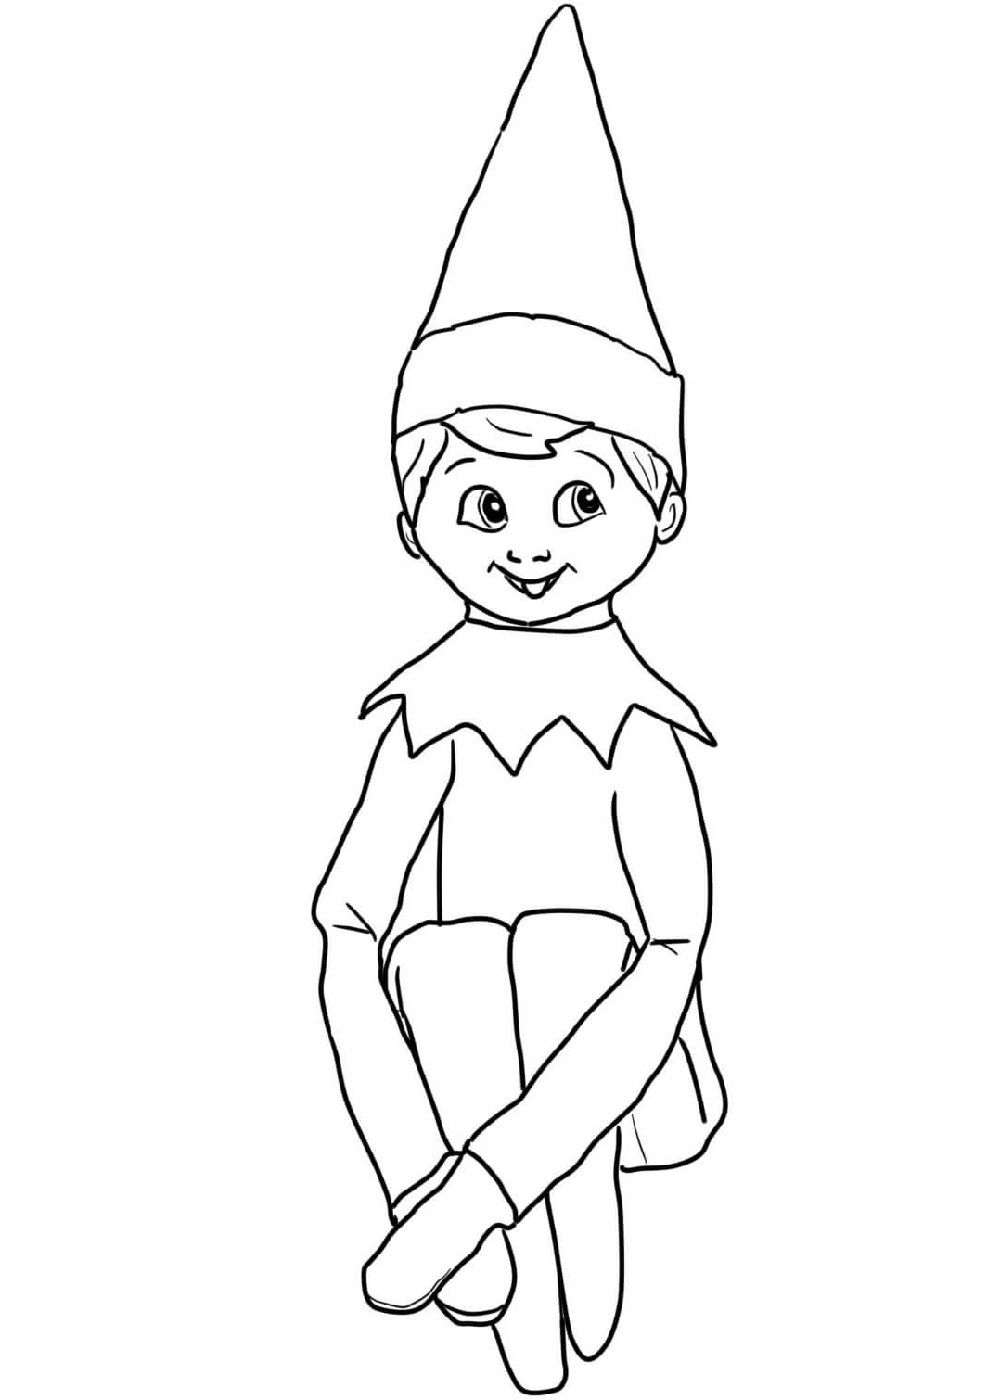 Elf On The Shelf Coloring Sheets Santa Coloring Pages Christmas